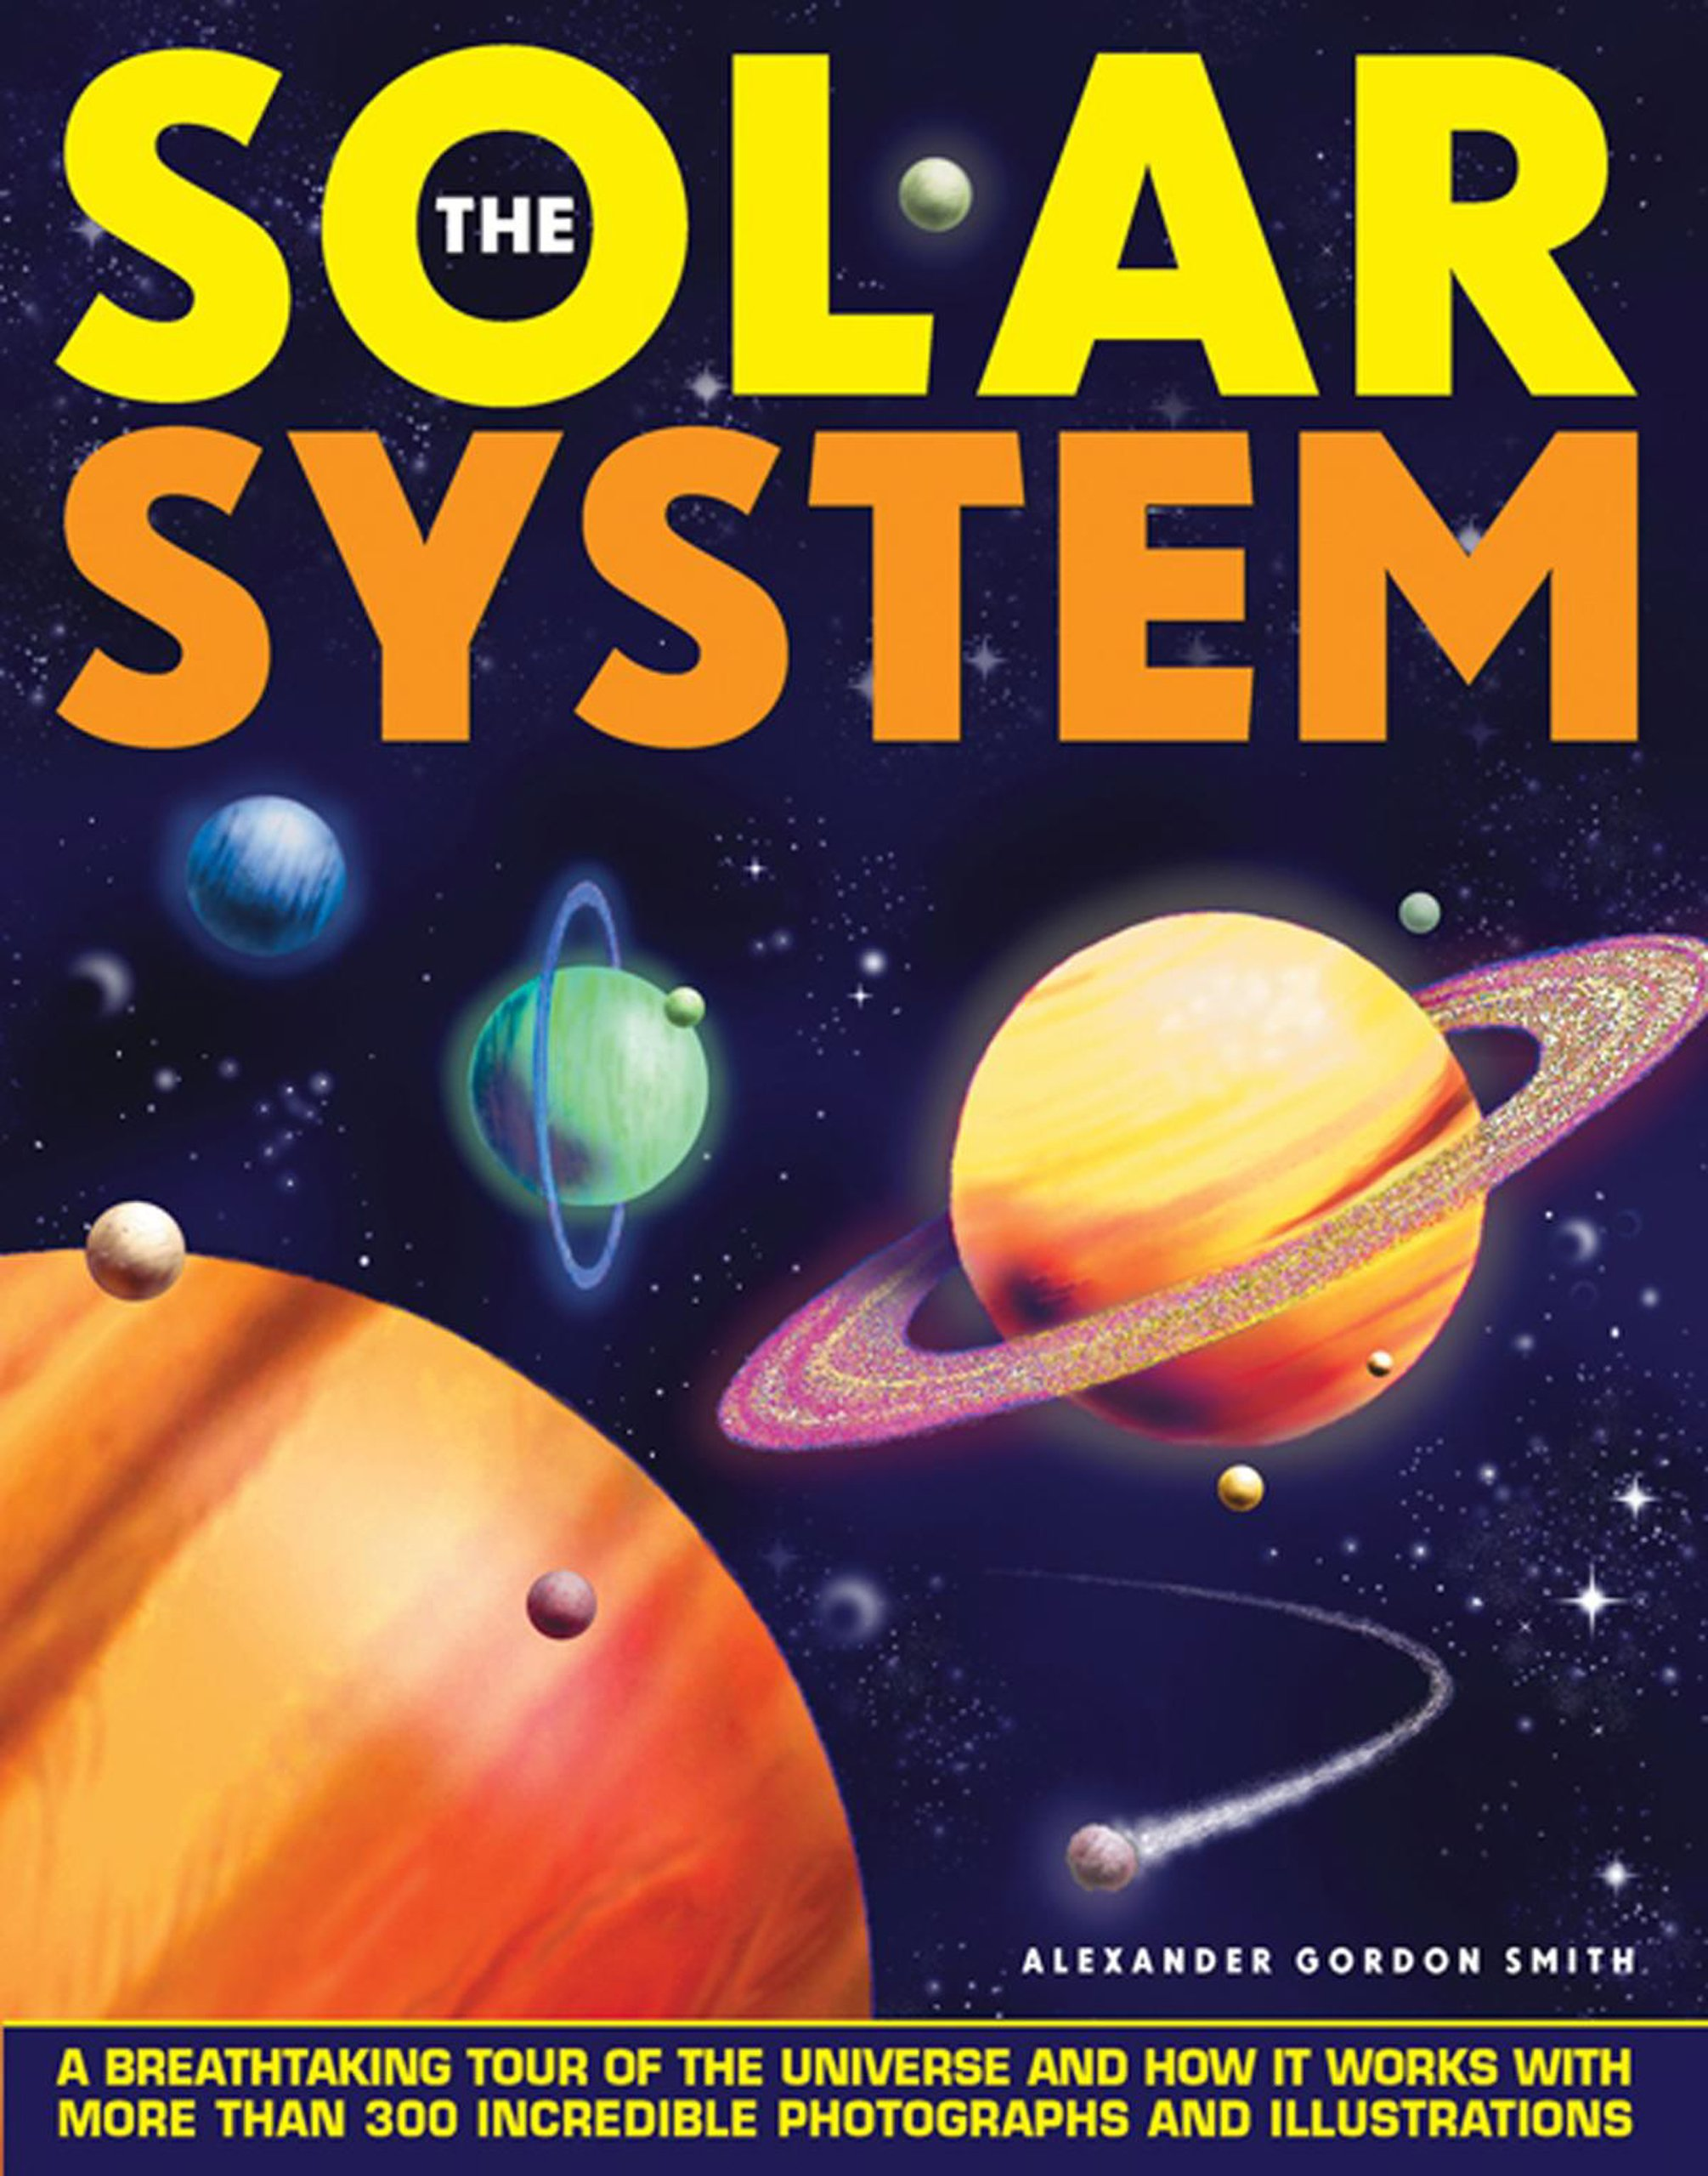 The Solar System: A Breathtaking Tour Of The Universe And How It Works With More Than 300 Incredible Photographs And Illustrations pdf epub